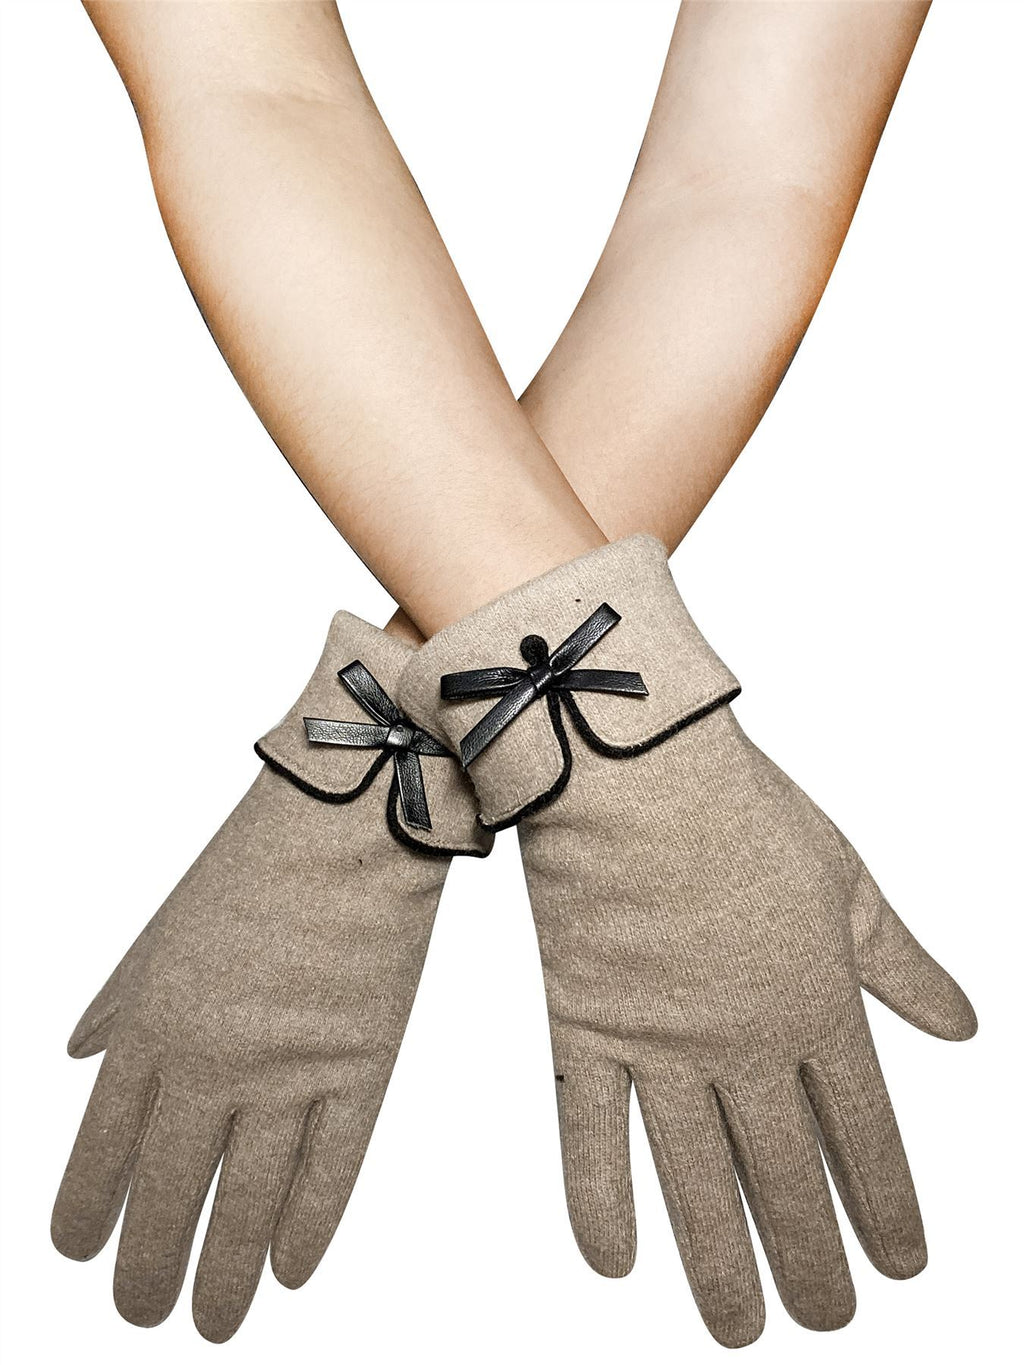 Preppy Style Bow Touchscreen Gloves Beige - The Tulip Tree Chiddingstone